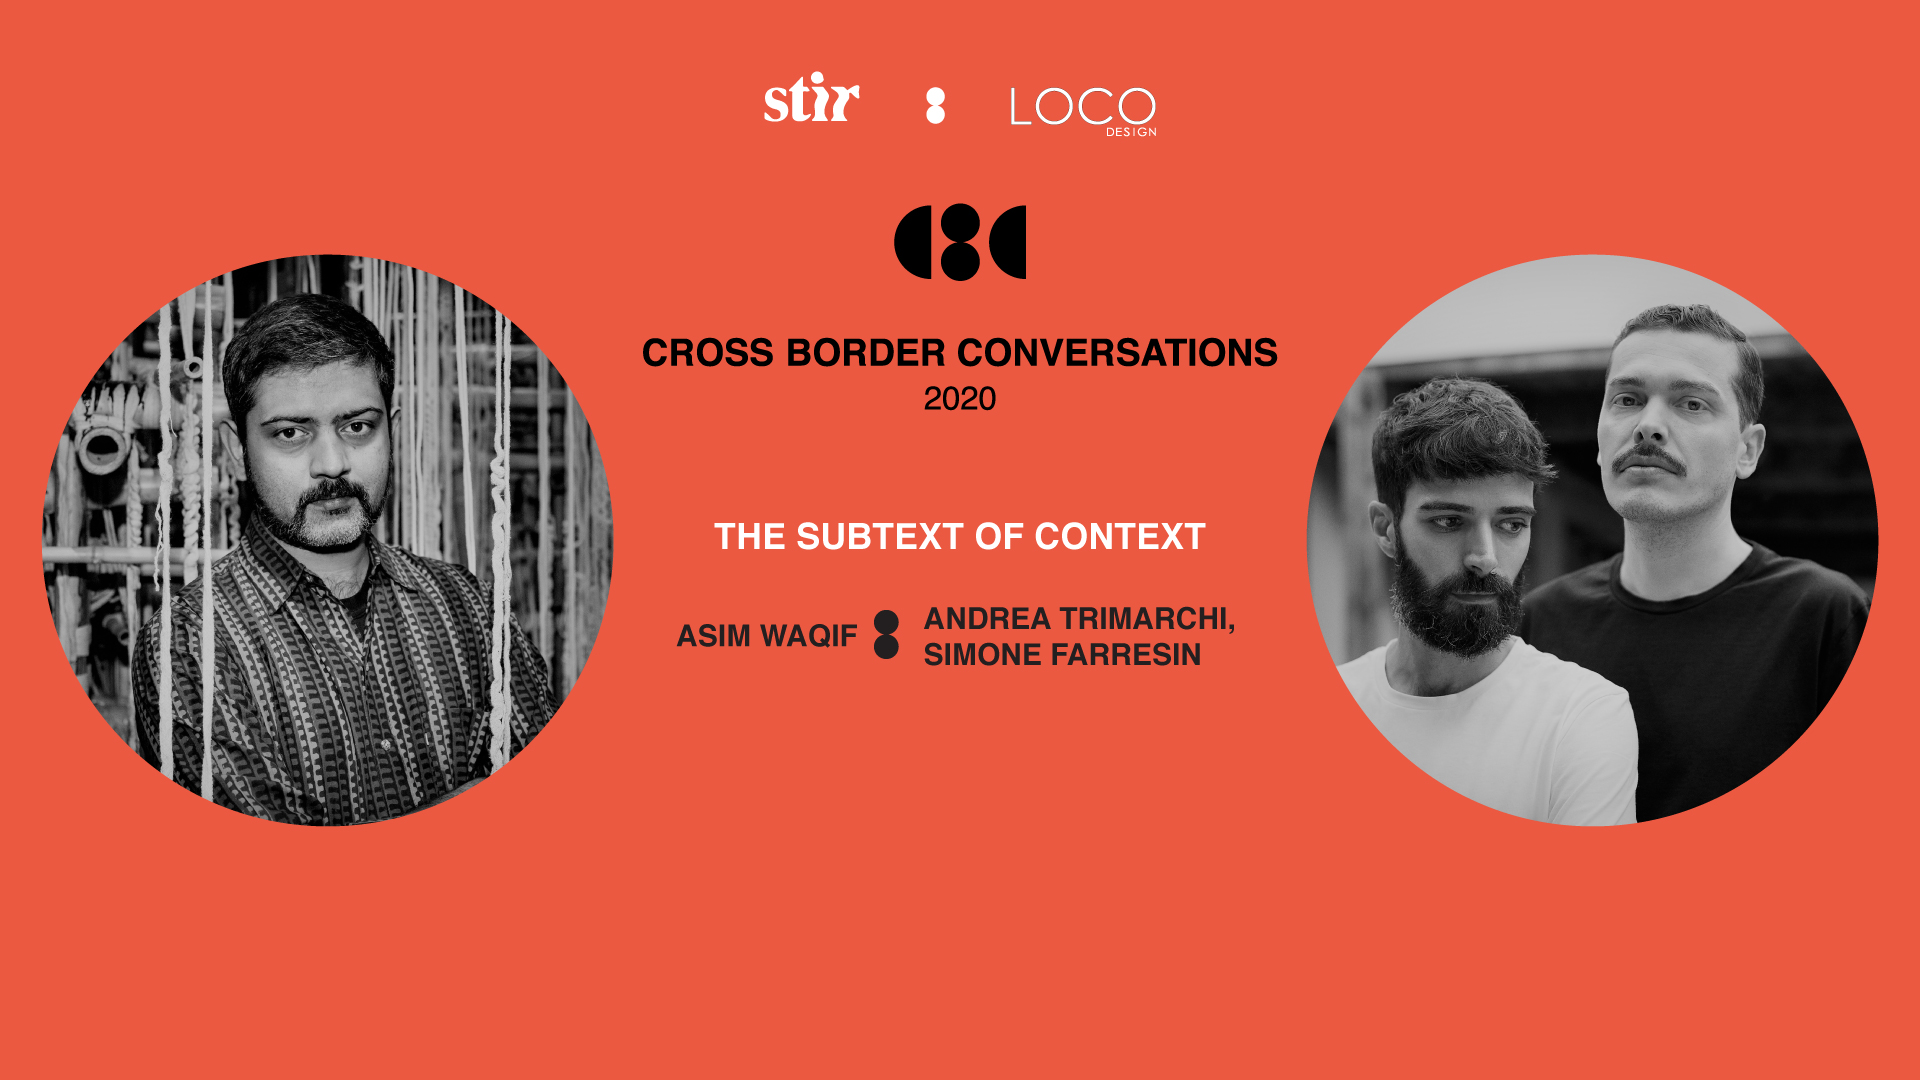 Cross Border Conversations | Studio Formafantasma X Asim Waqif | STIR X LOCO Design